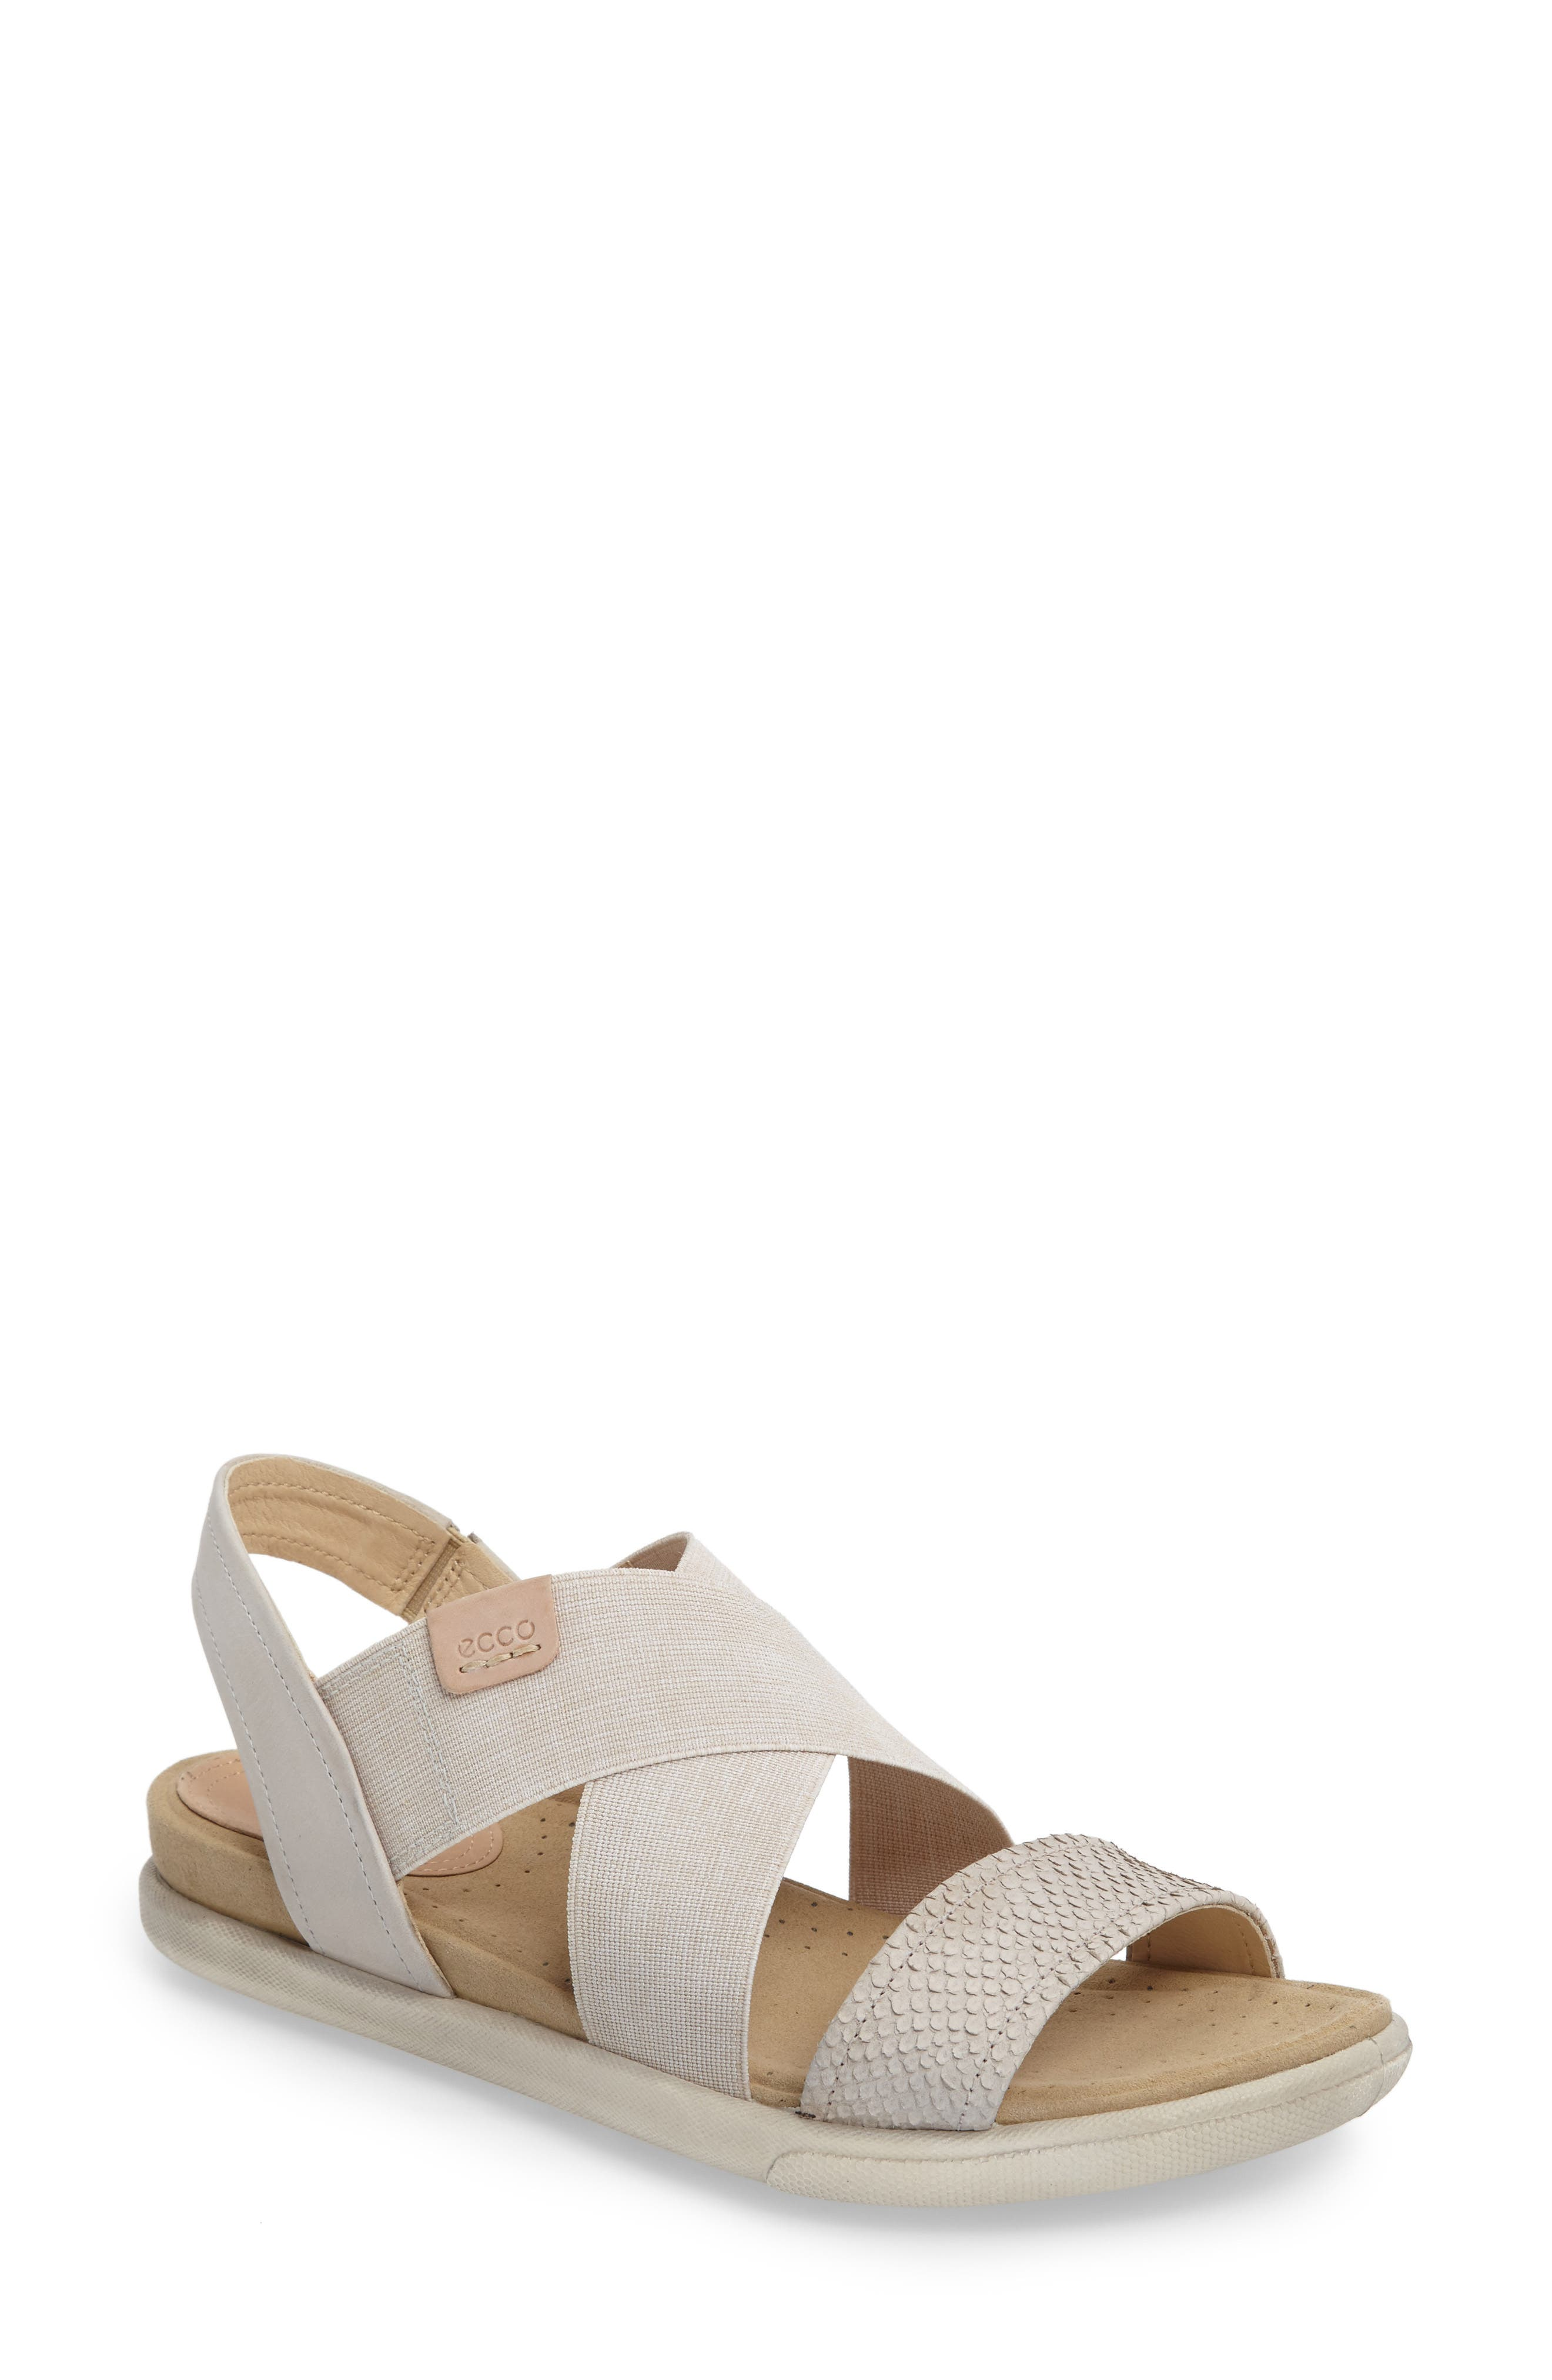 Damara Cross-Strap Sandal,                             Main thumbnail 7, color,